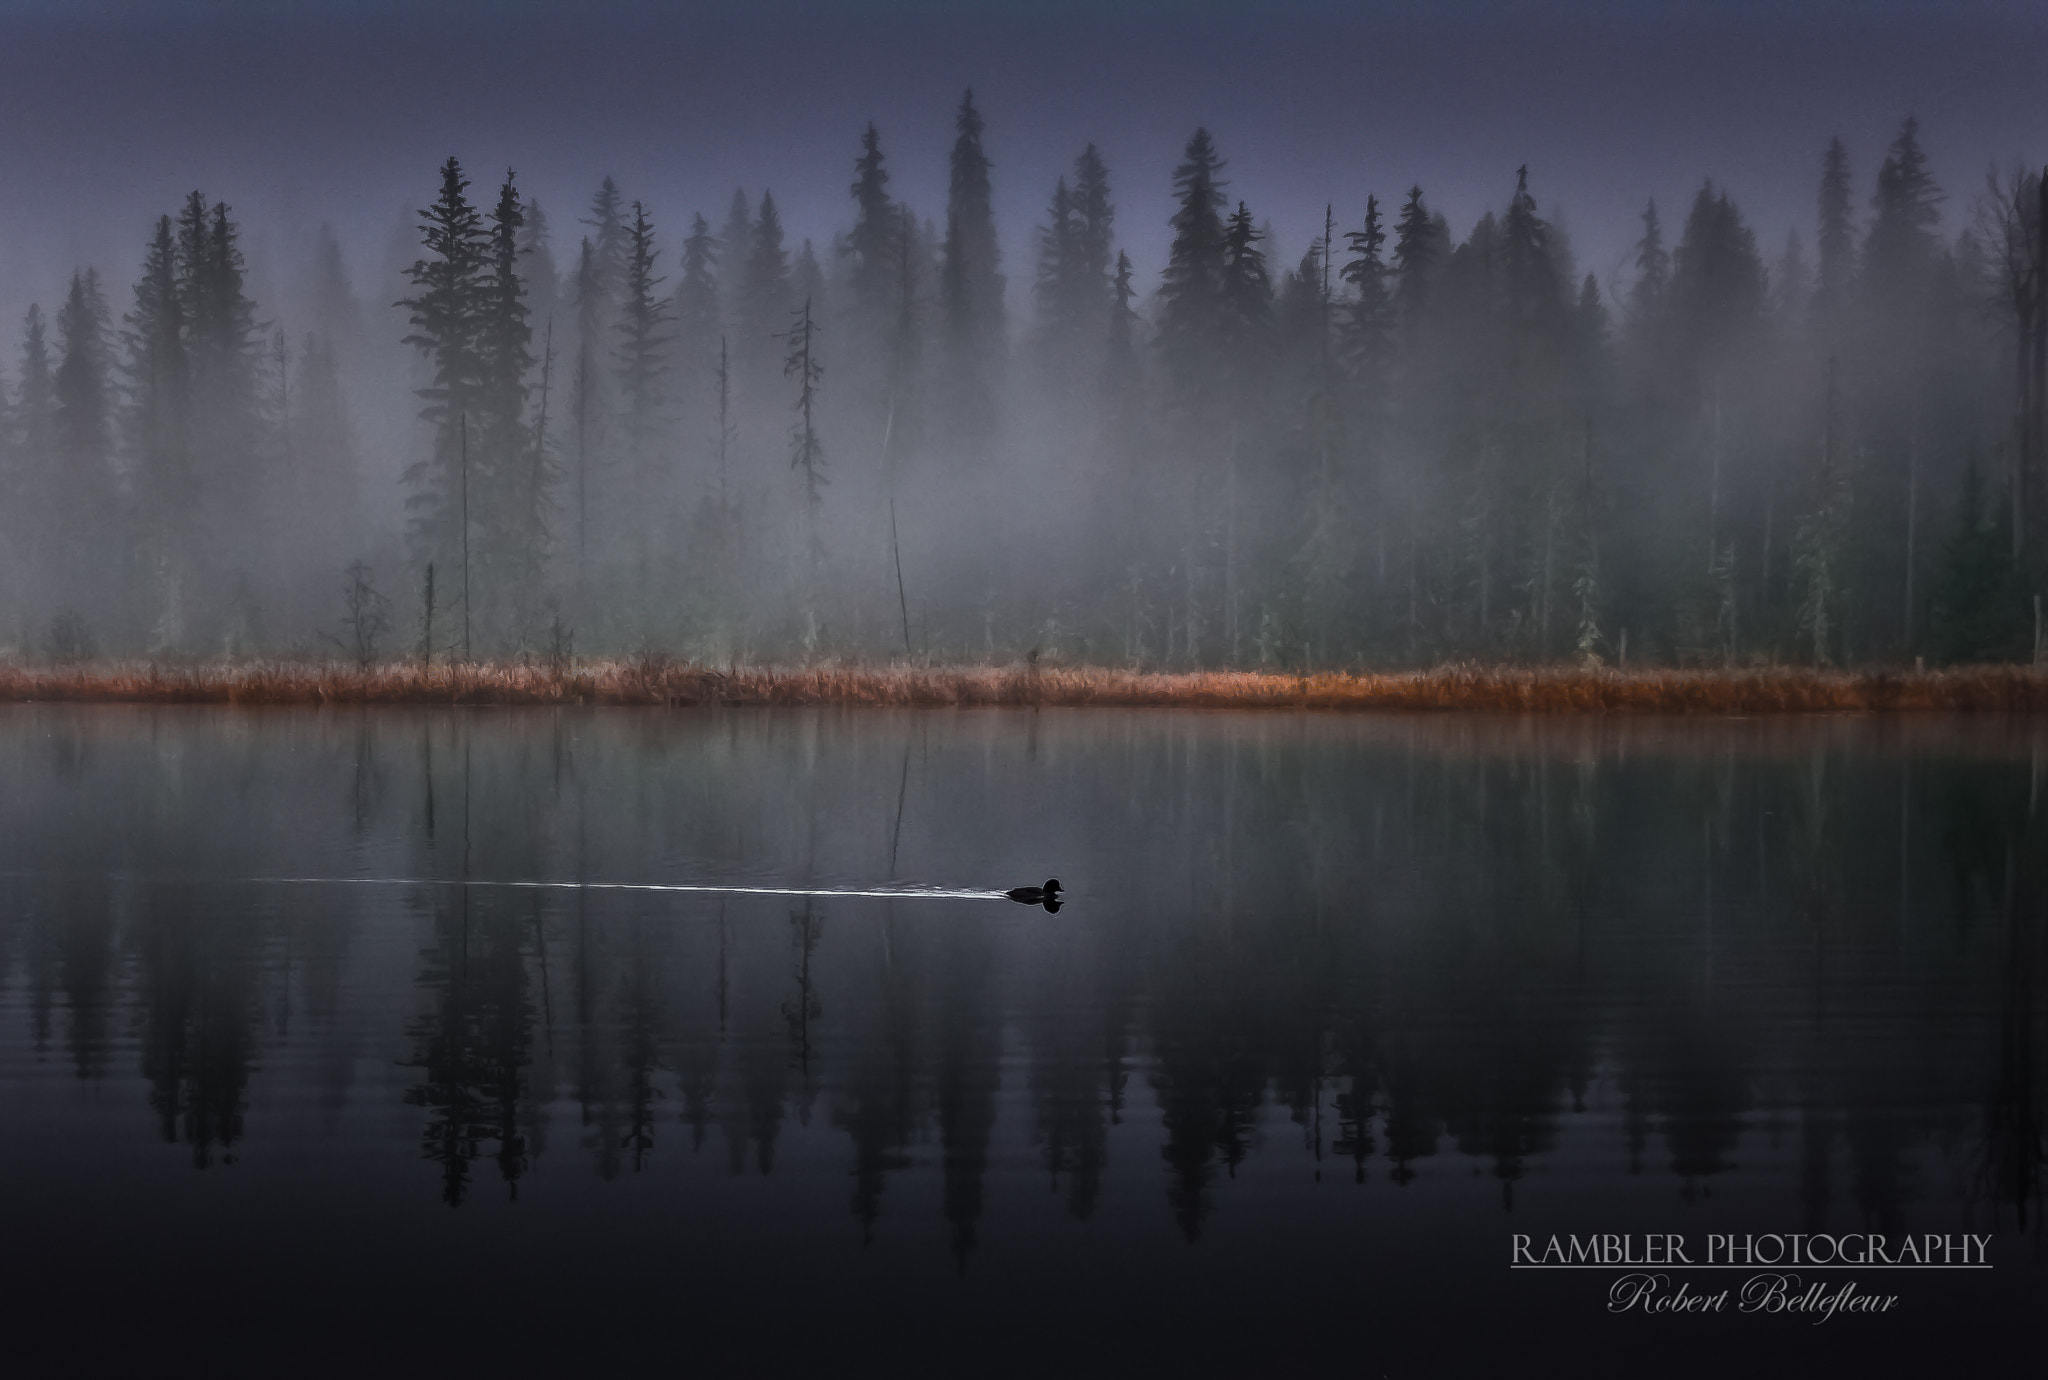 Photograph Alone in the Fog by Robert Bellefleur on 500px